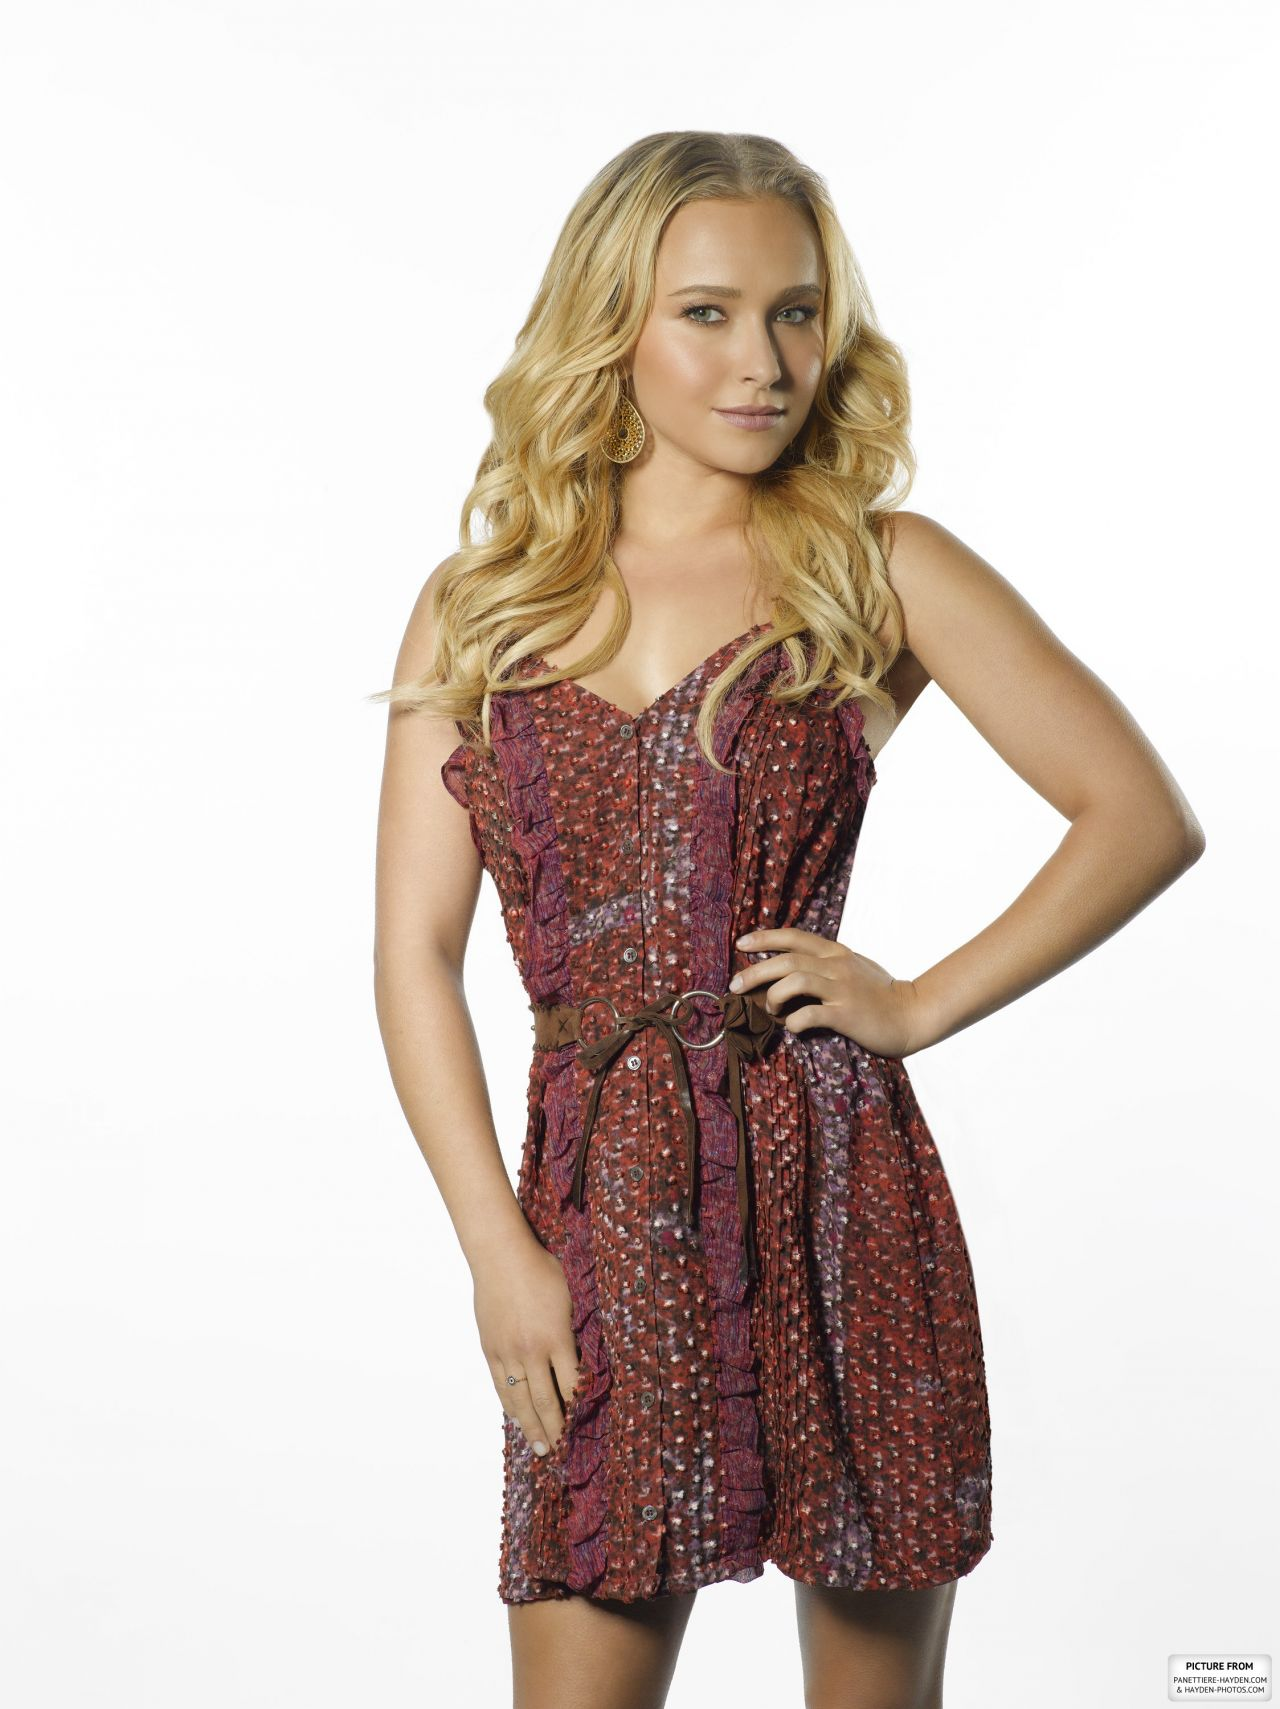 Hayden panettiere nashville think